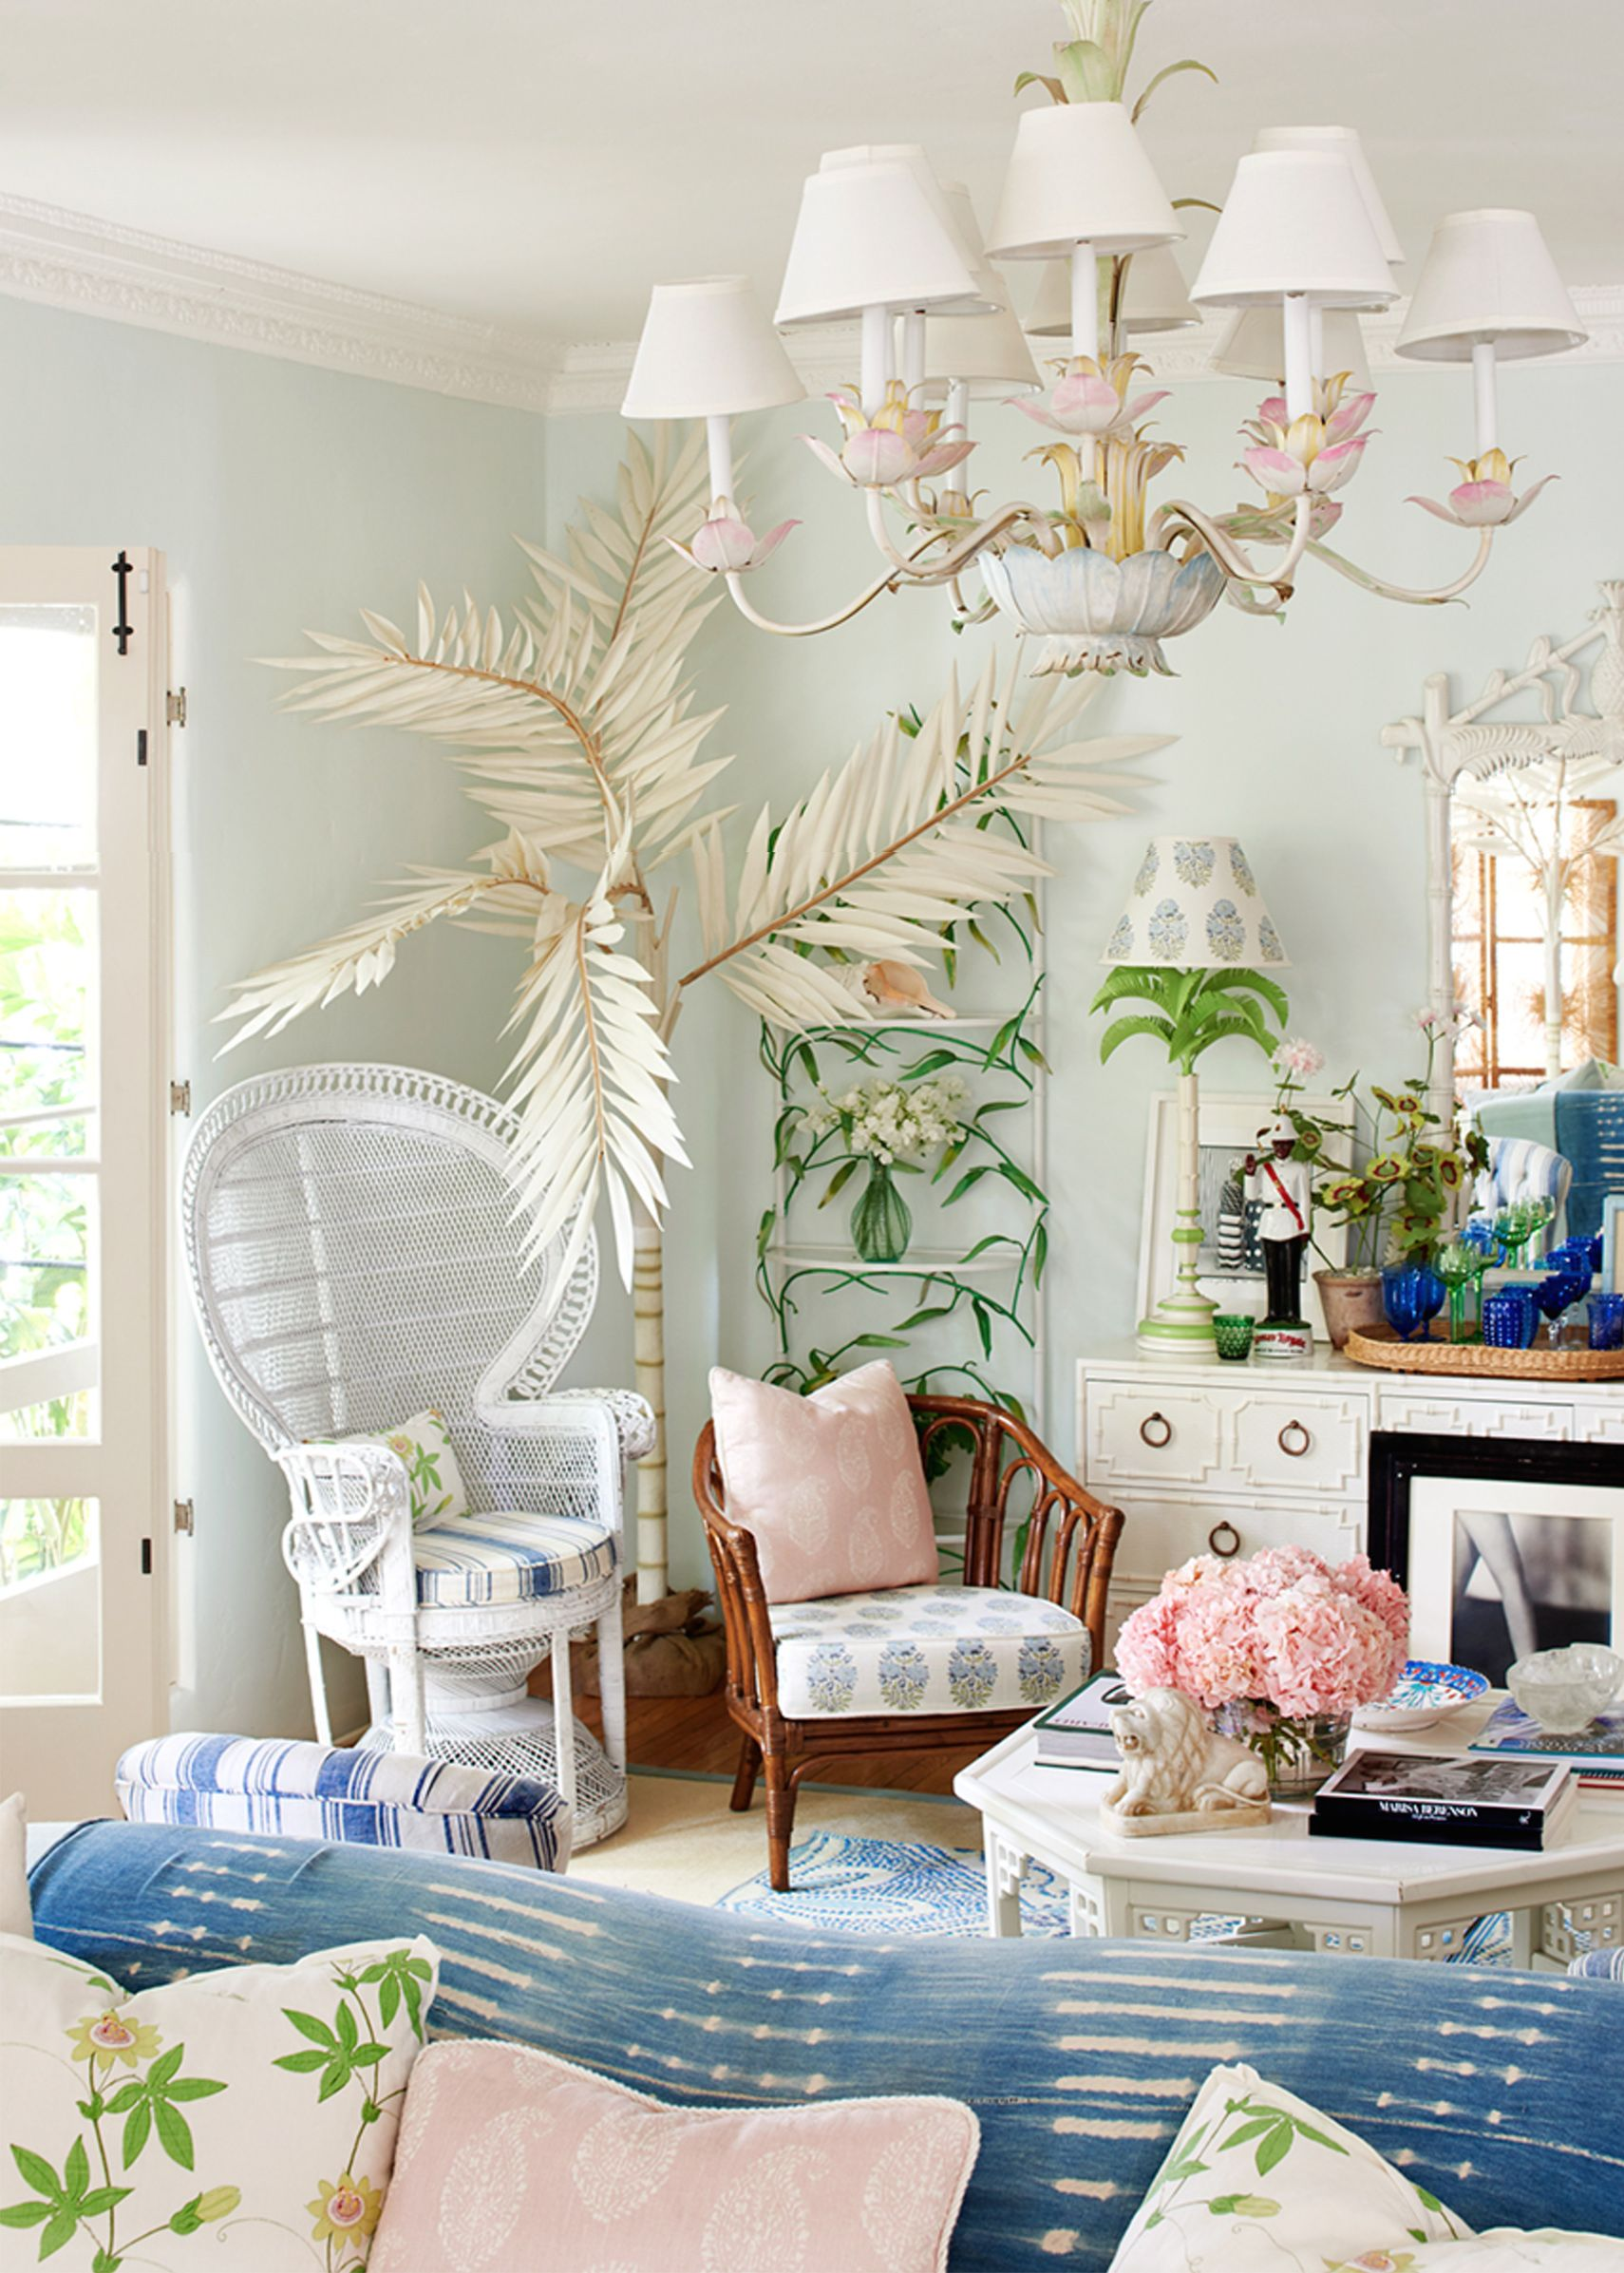 Get Inspired By This Board! Http://www.homedesignideas.eu